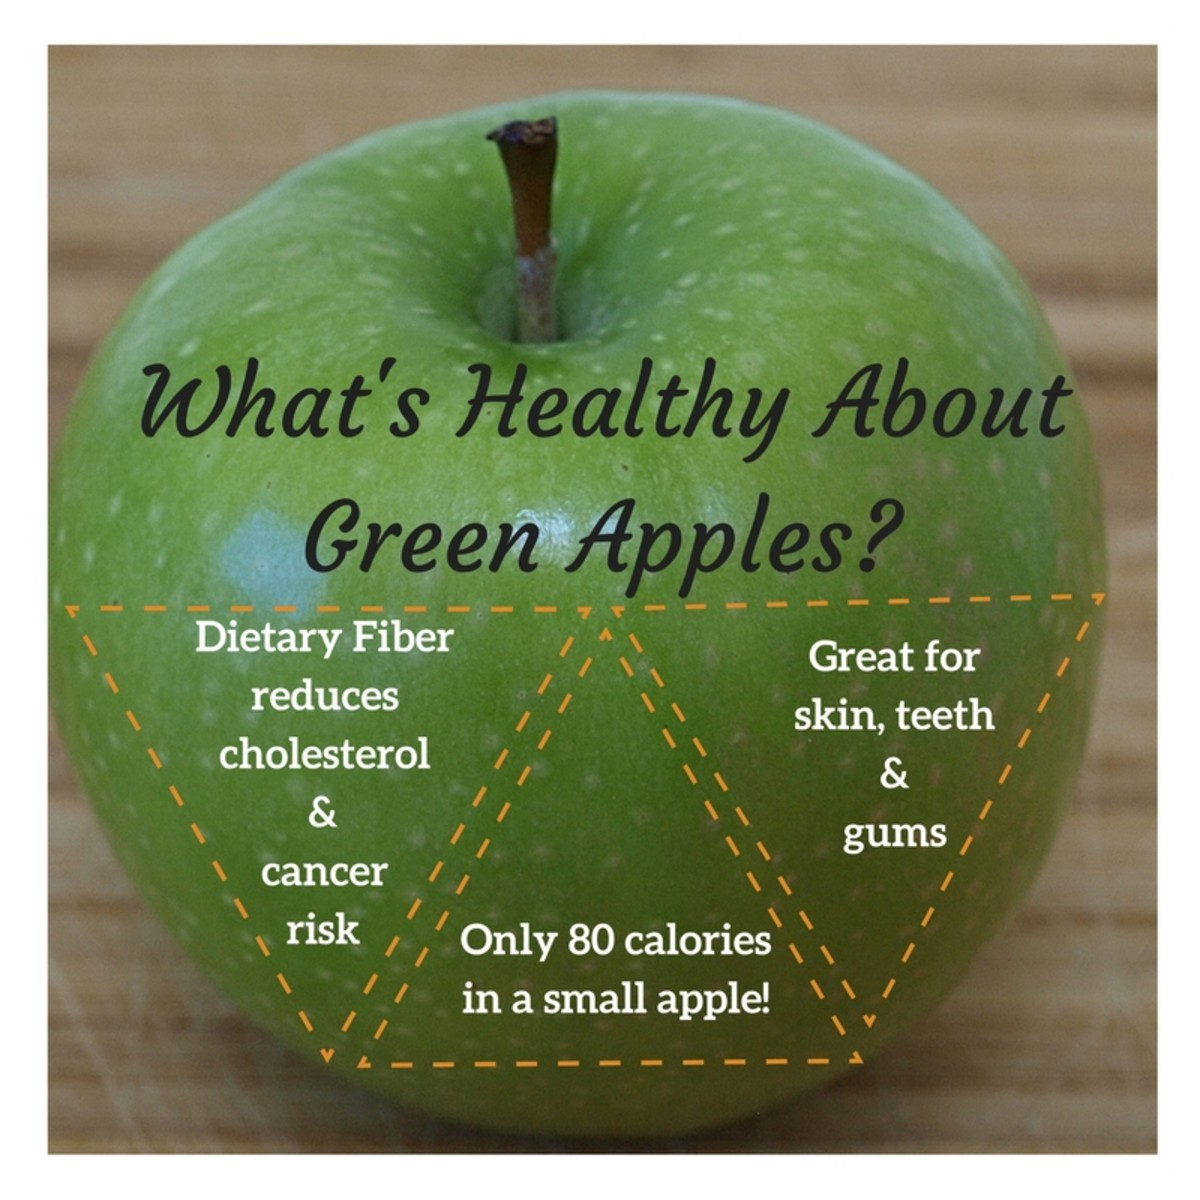 Studies show that green apples help prevent diseases, including cancer and Alzheimer's.